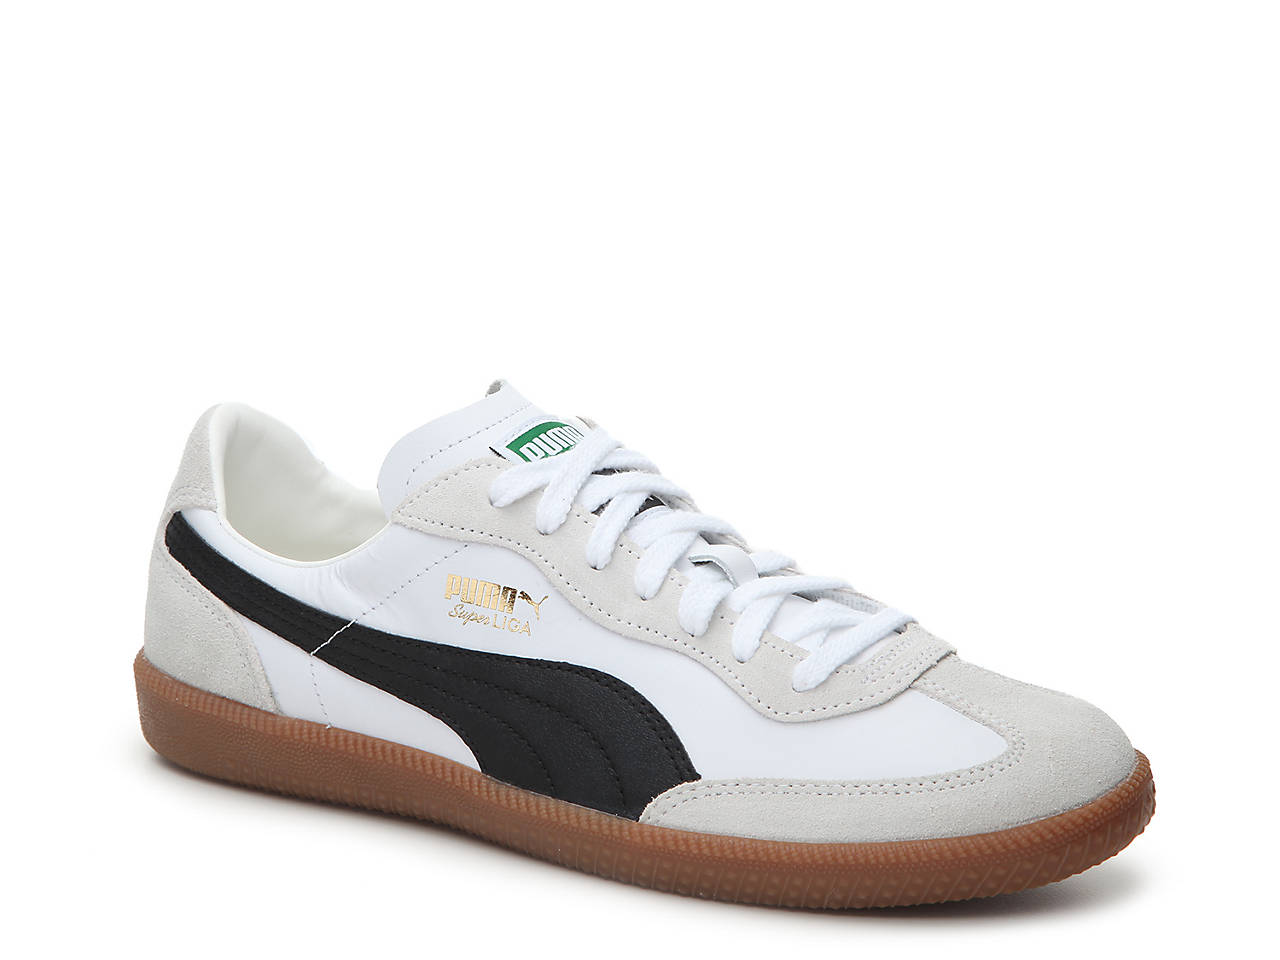 41db6611541 Puma Super Liga OG Retro Sneaker - Men s Men s Shoes